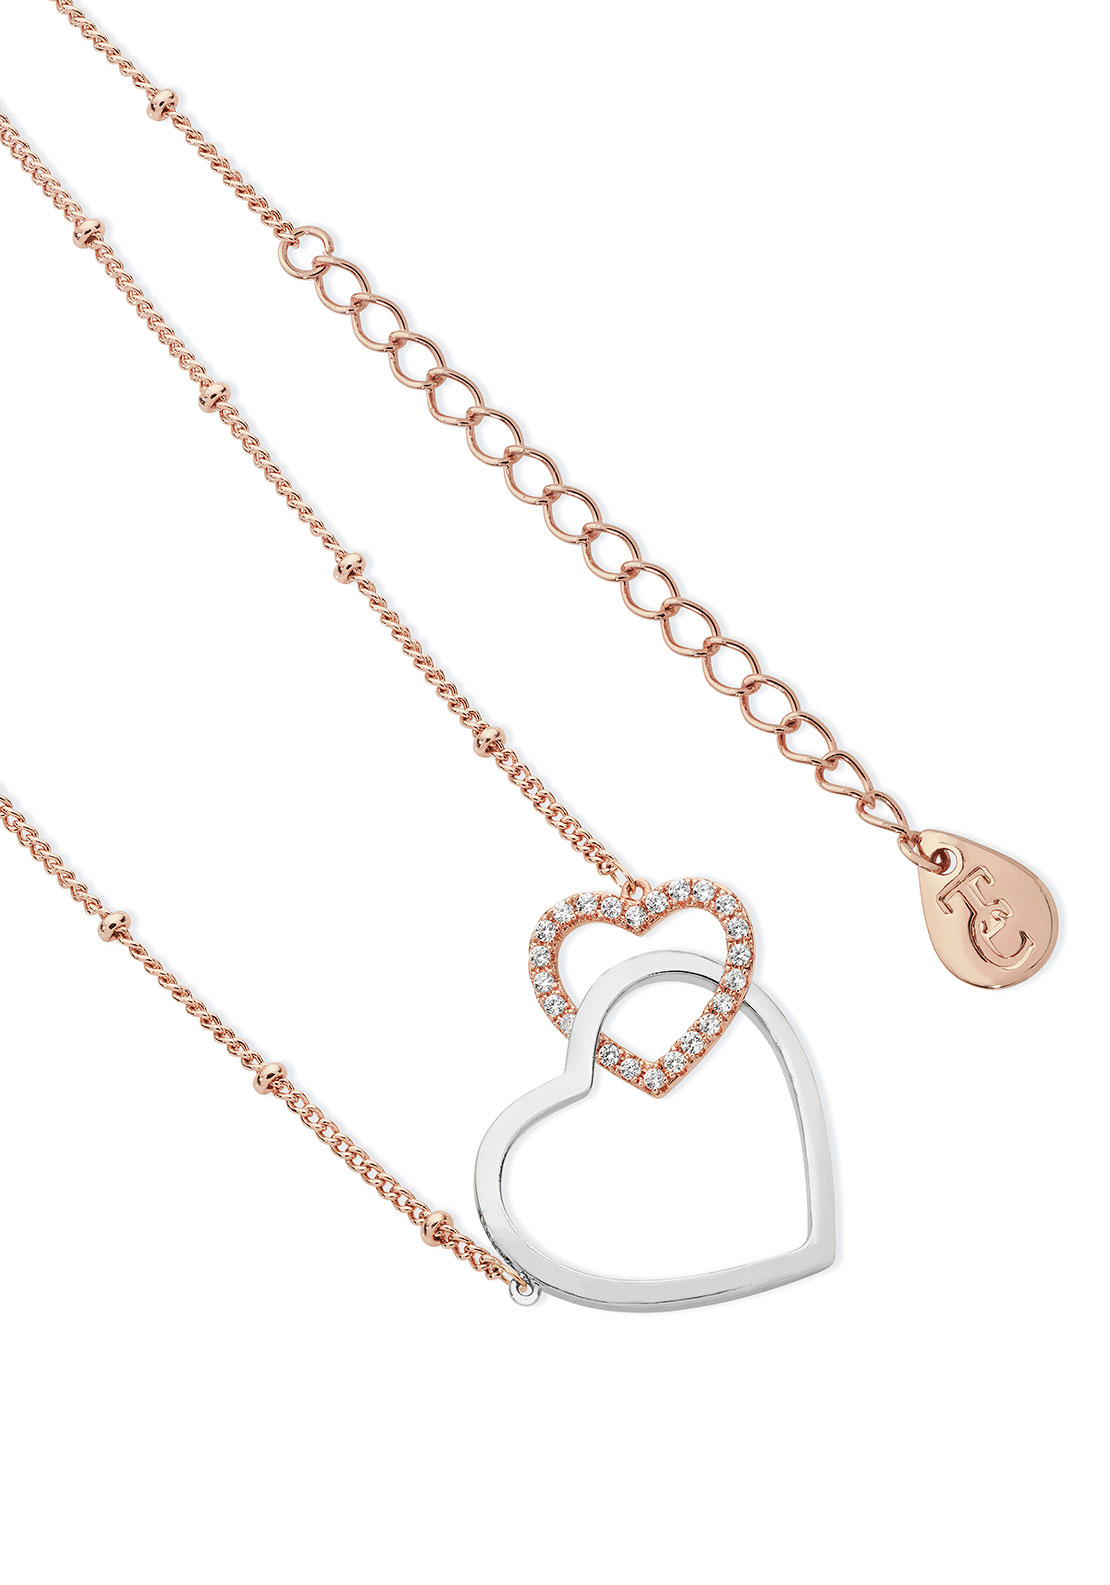 Tipperary Crystal Sparkling Interlinked Hearts Necklace